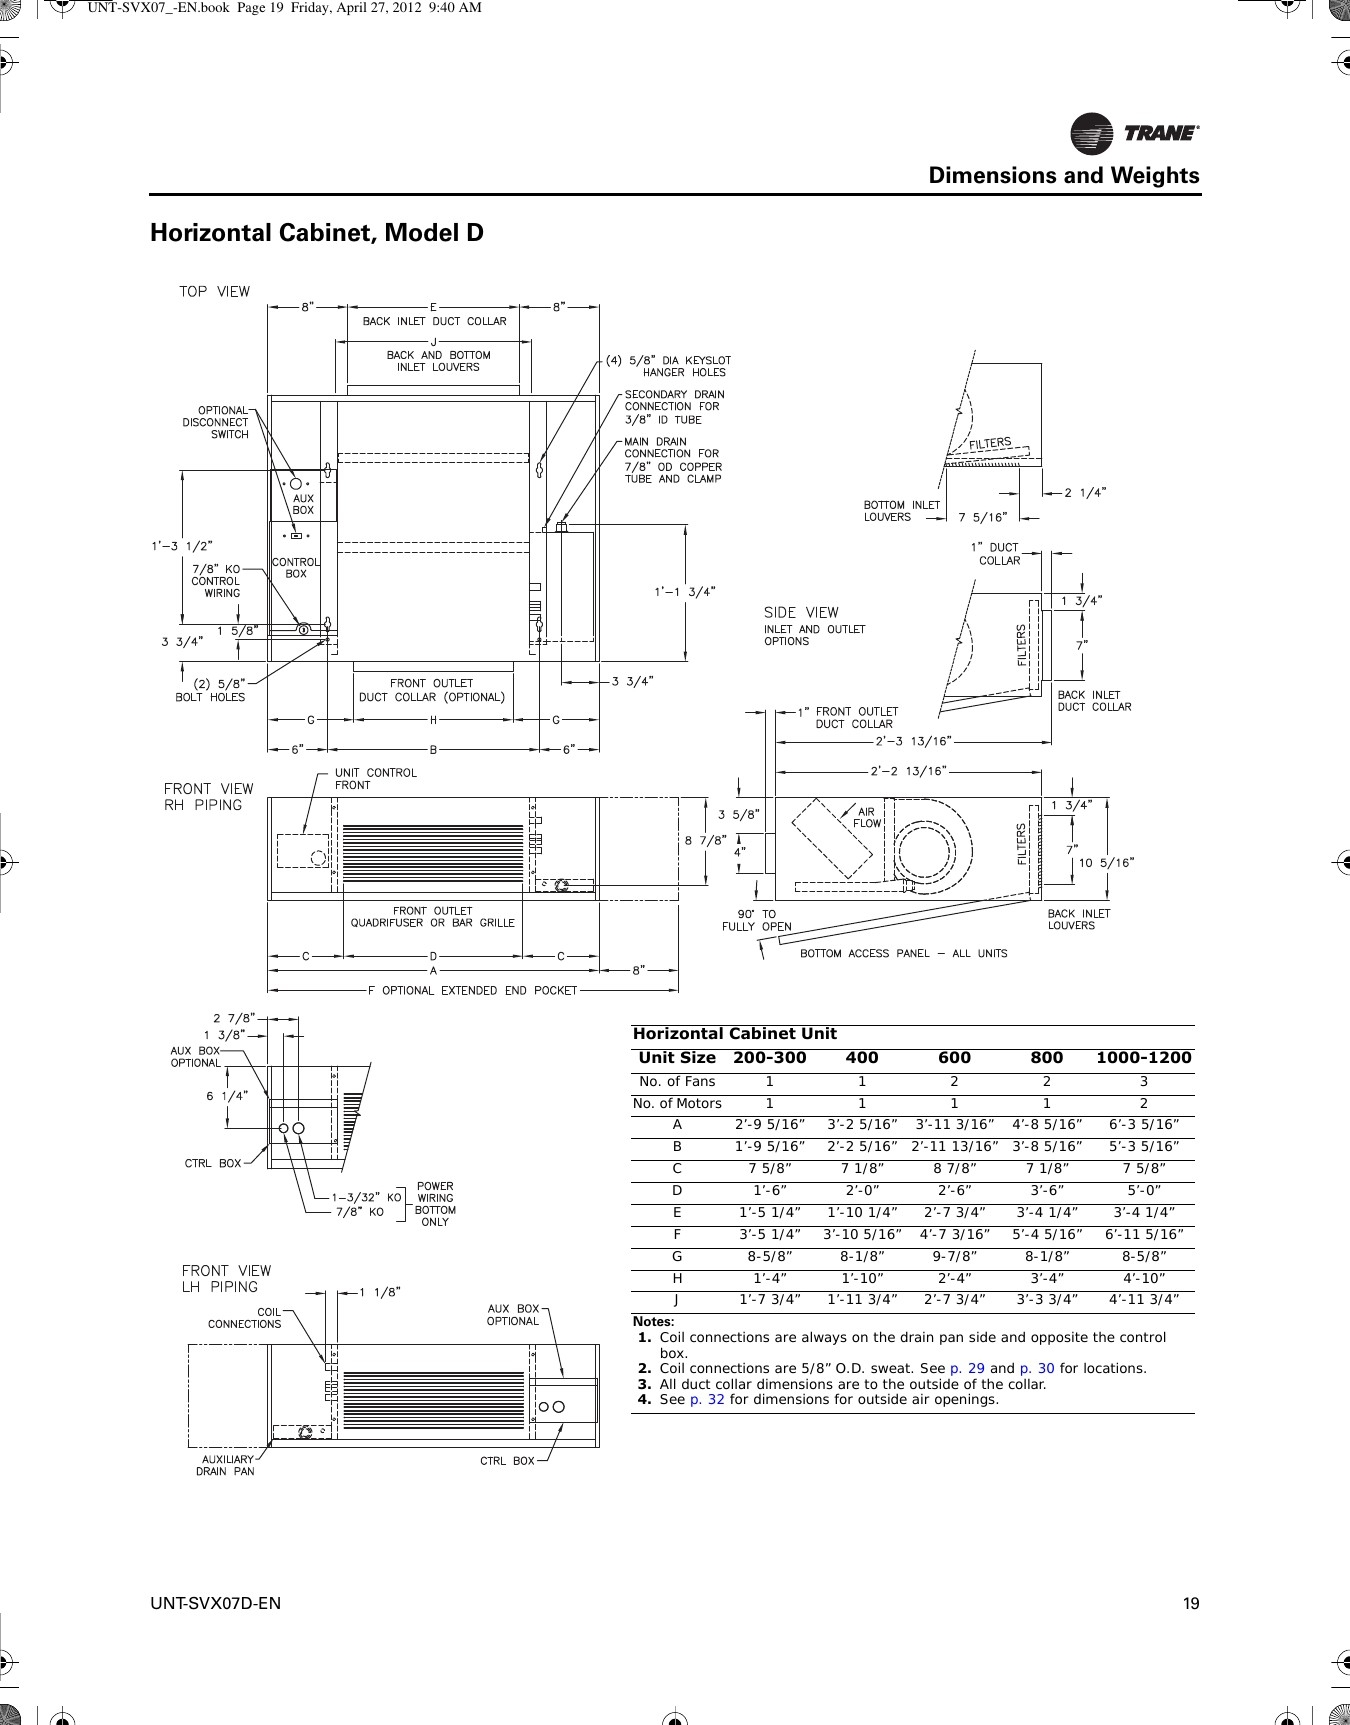 dometic comfort control center 2 wiring diagram